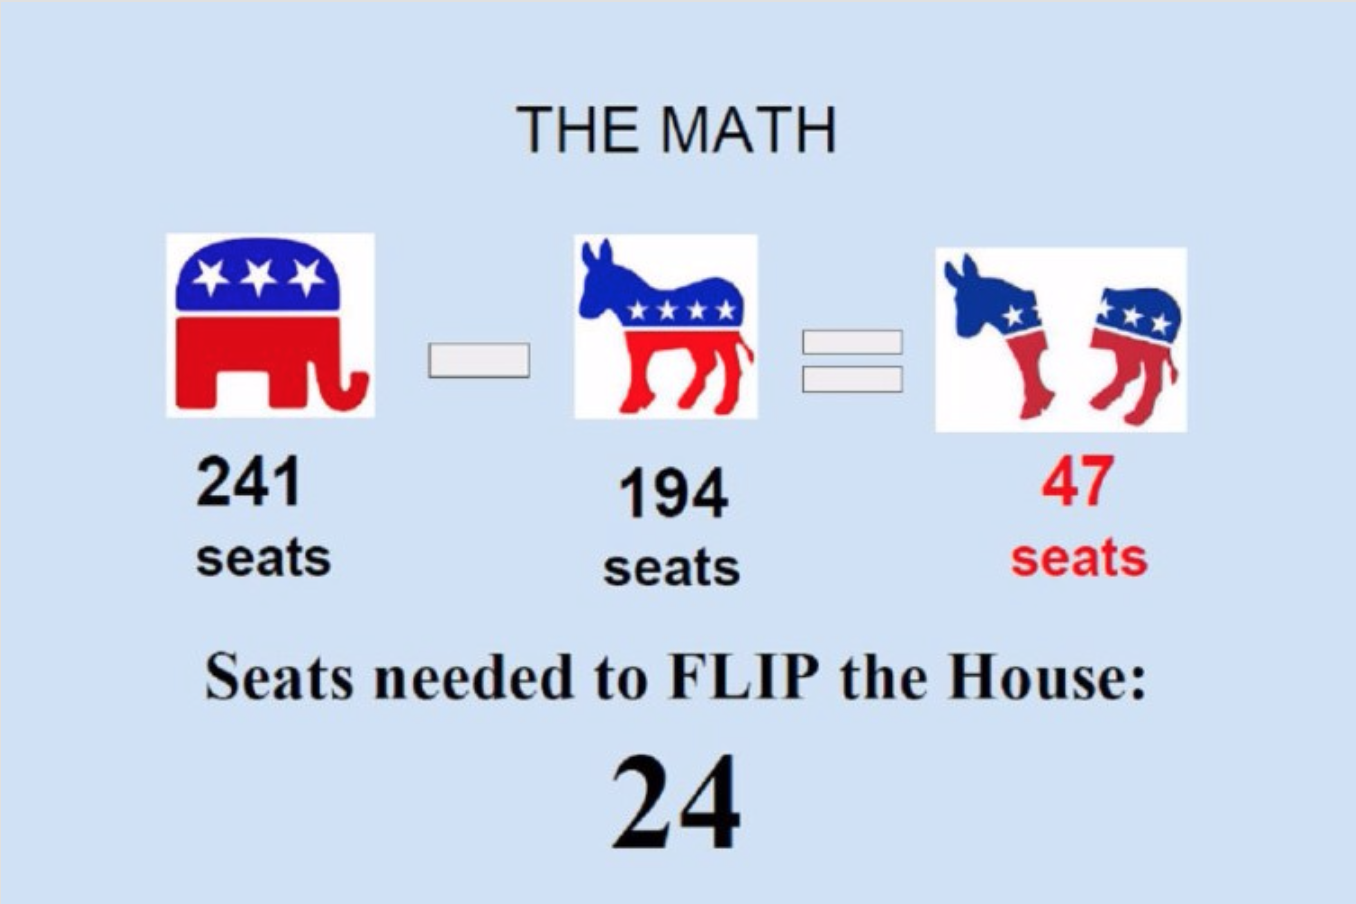 House of Reps math.png